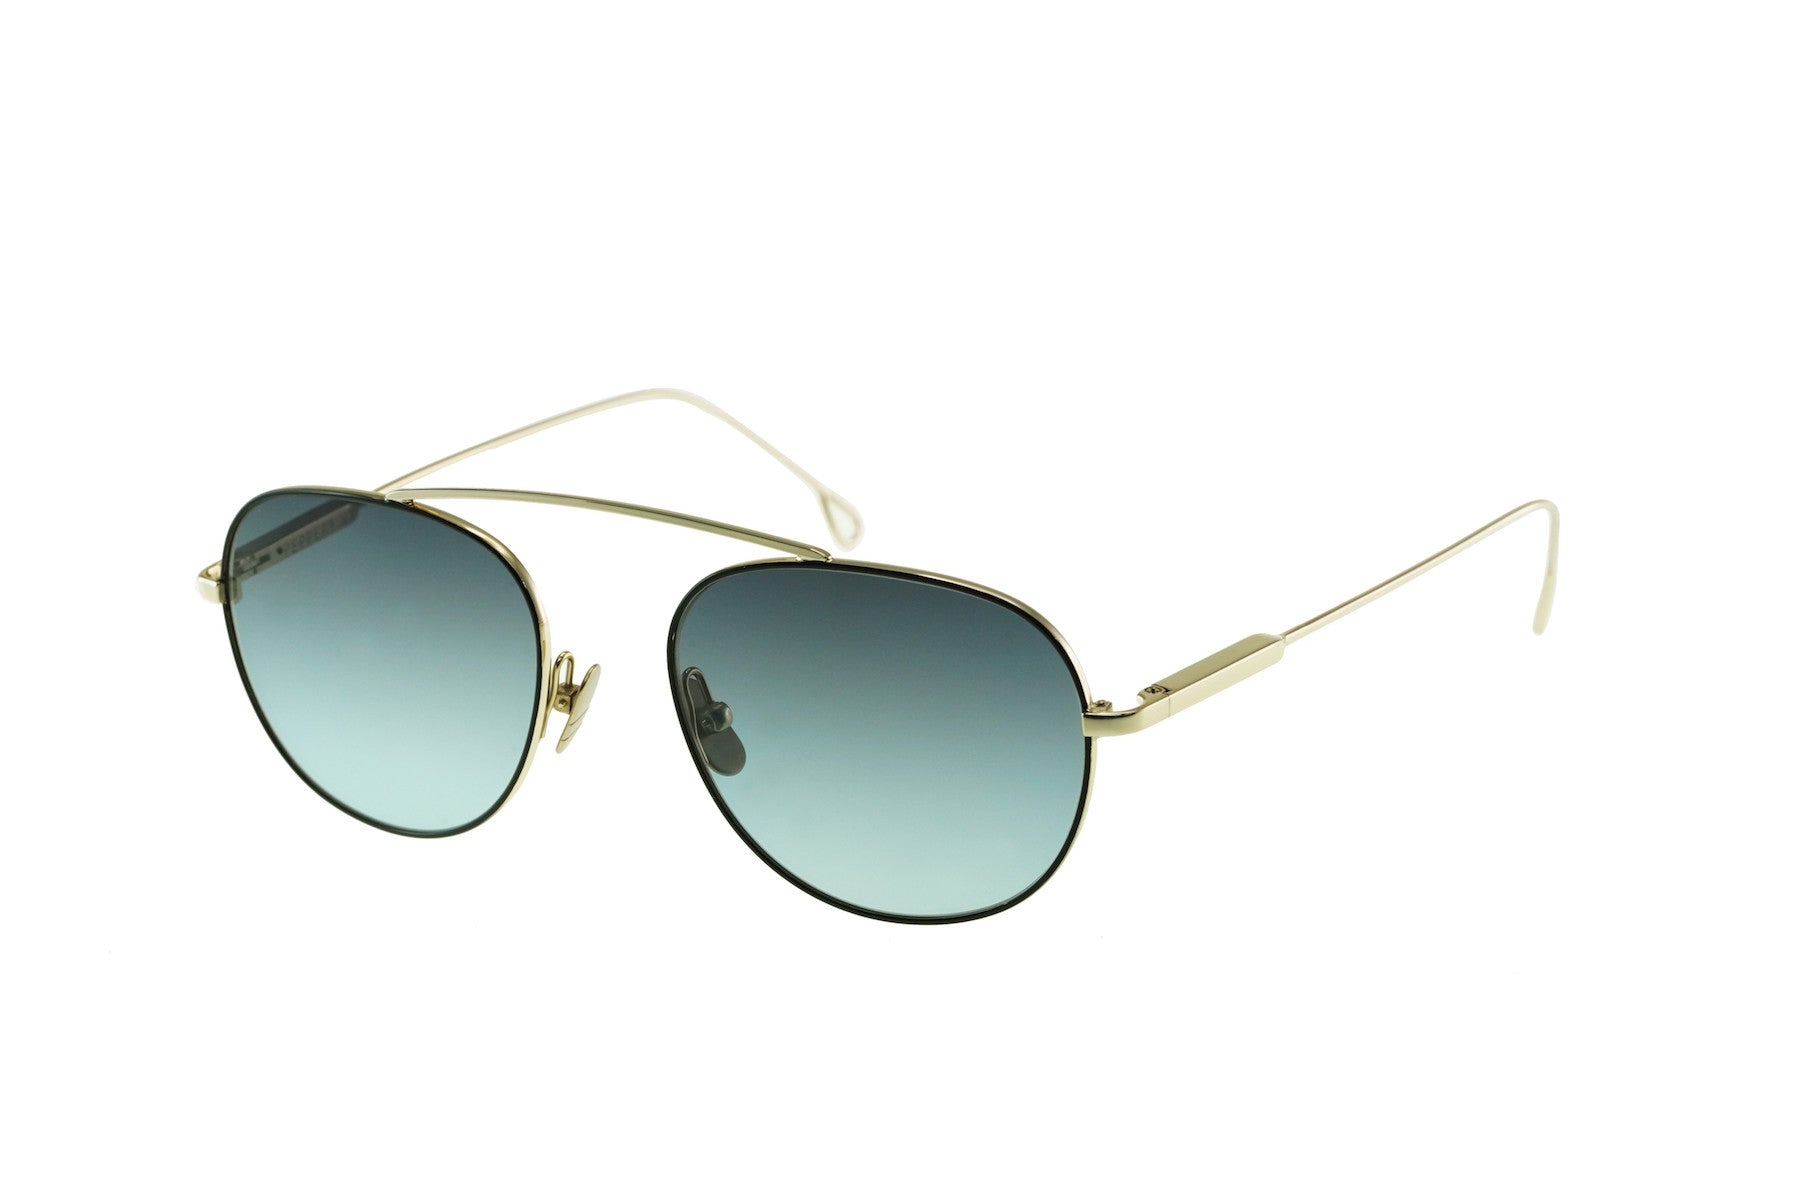 Ocean 925 - Peppertint - Designer sunglasses